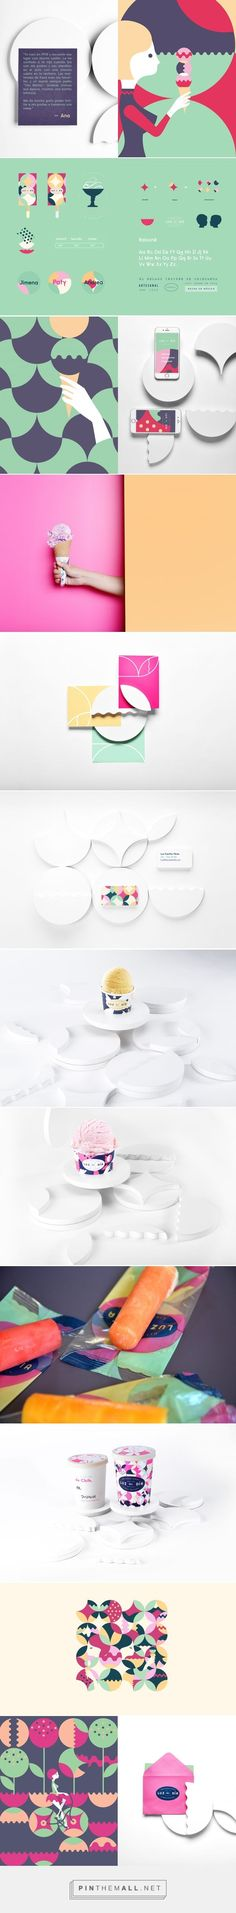 La luz del Día / ice cream by Estudio Yeyé                                                                                                                                                                                 More